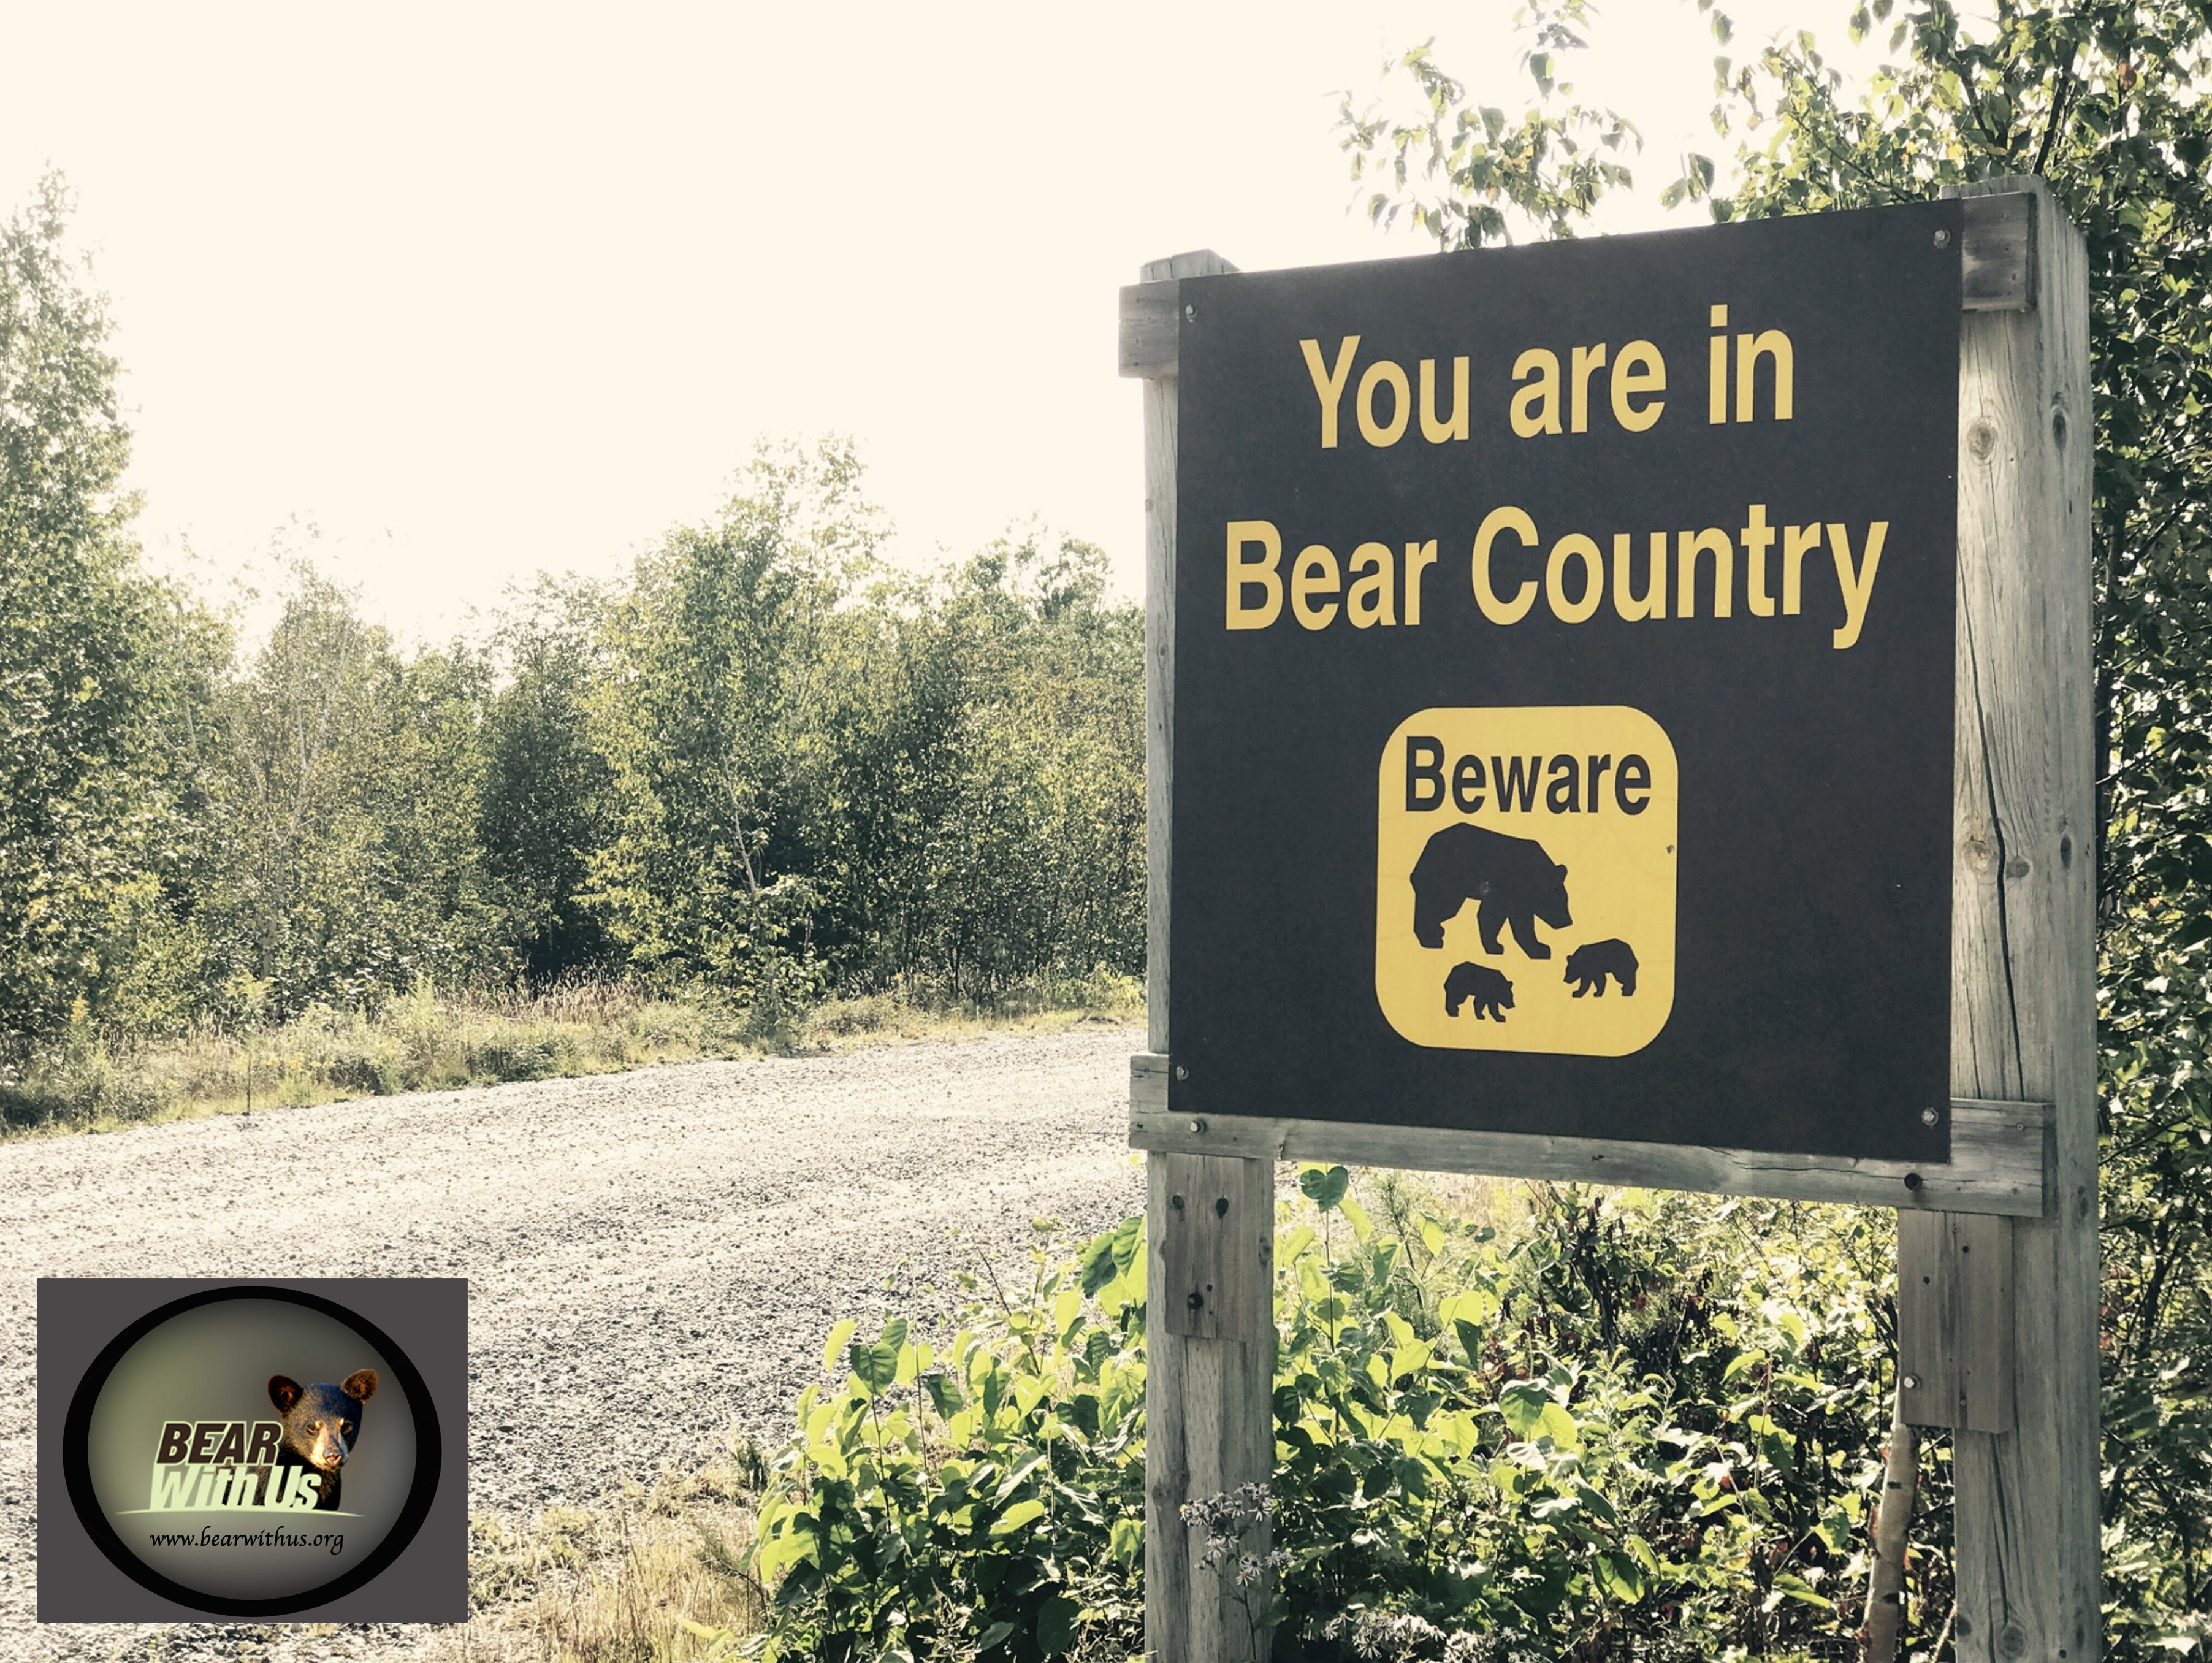 sign, You are in Bear Country